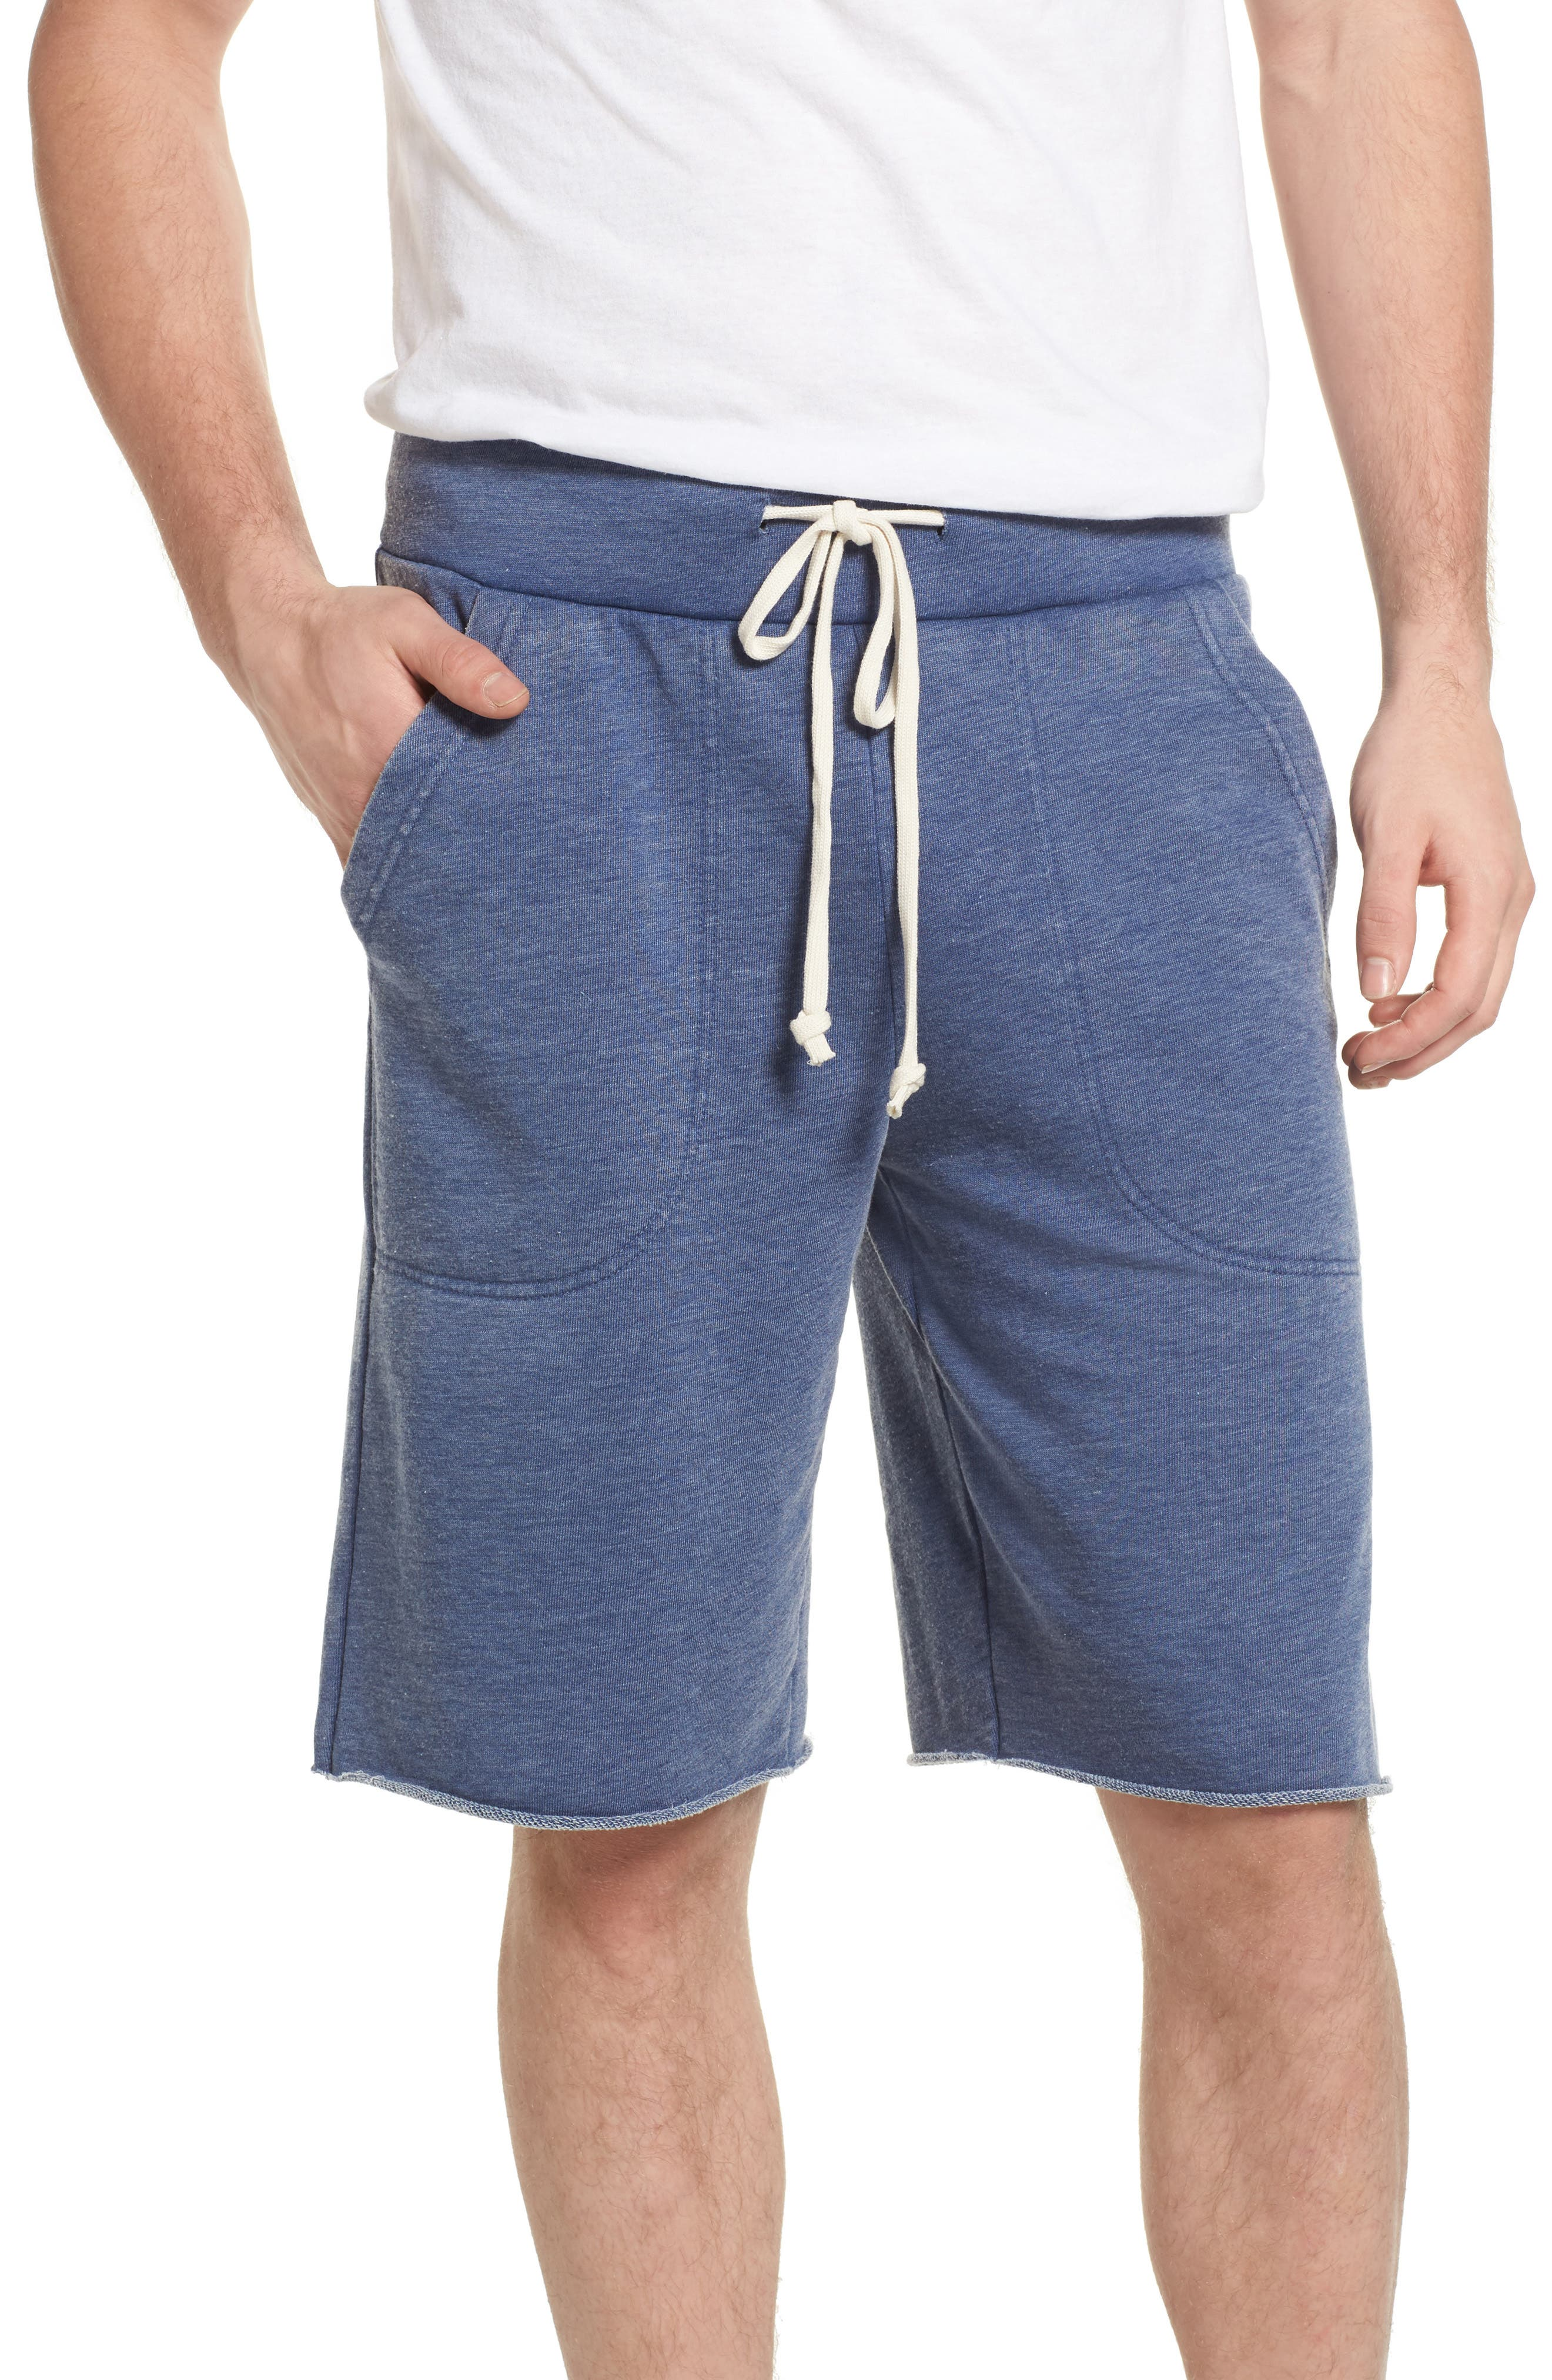 ALTERNATIVE 'Victory' French Terry Shorts in Navy